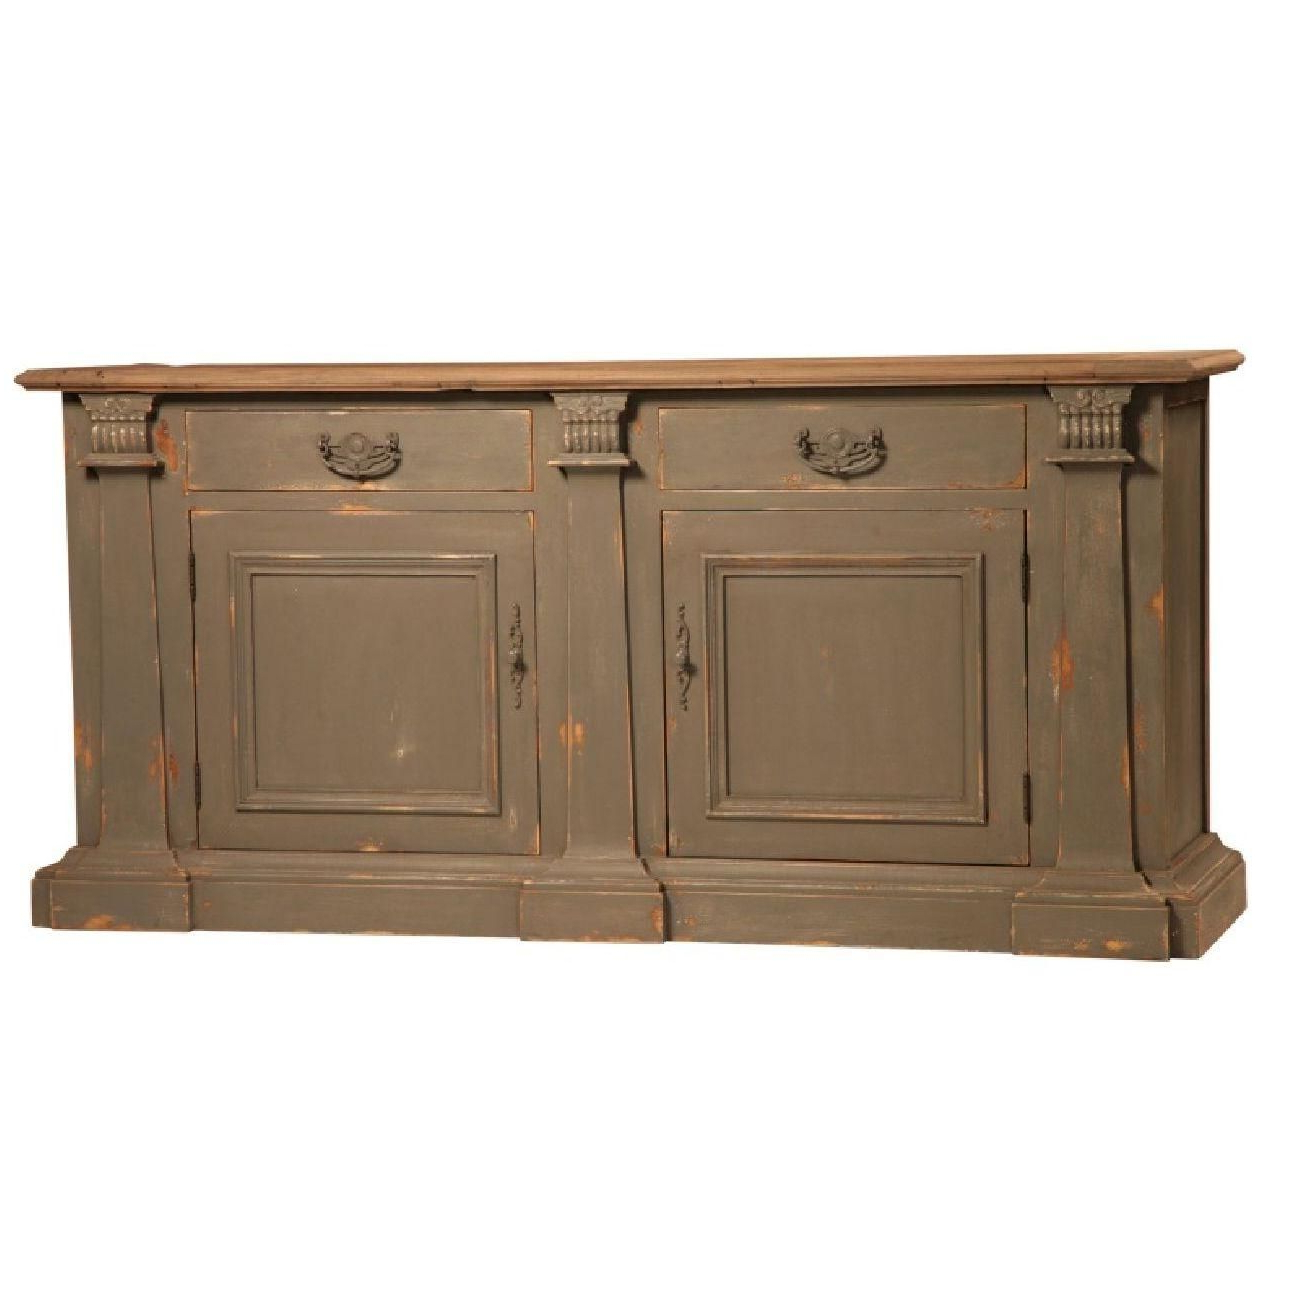 Reclaimed Elm Top With Distressed Painted Finish Two Drawers In 2019 Steinhatchee Reclaimed Pine 4 Door Sideboards (View 13 of 20)